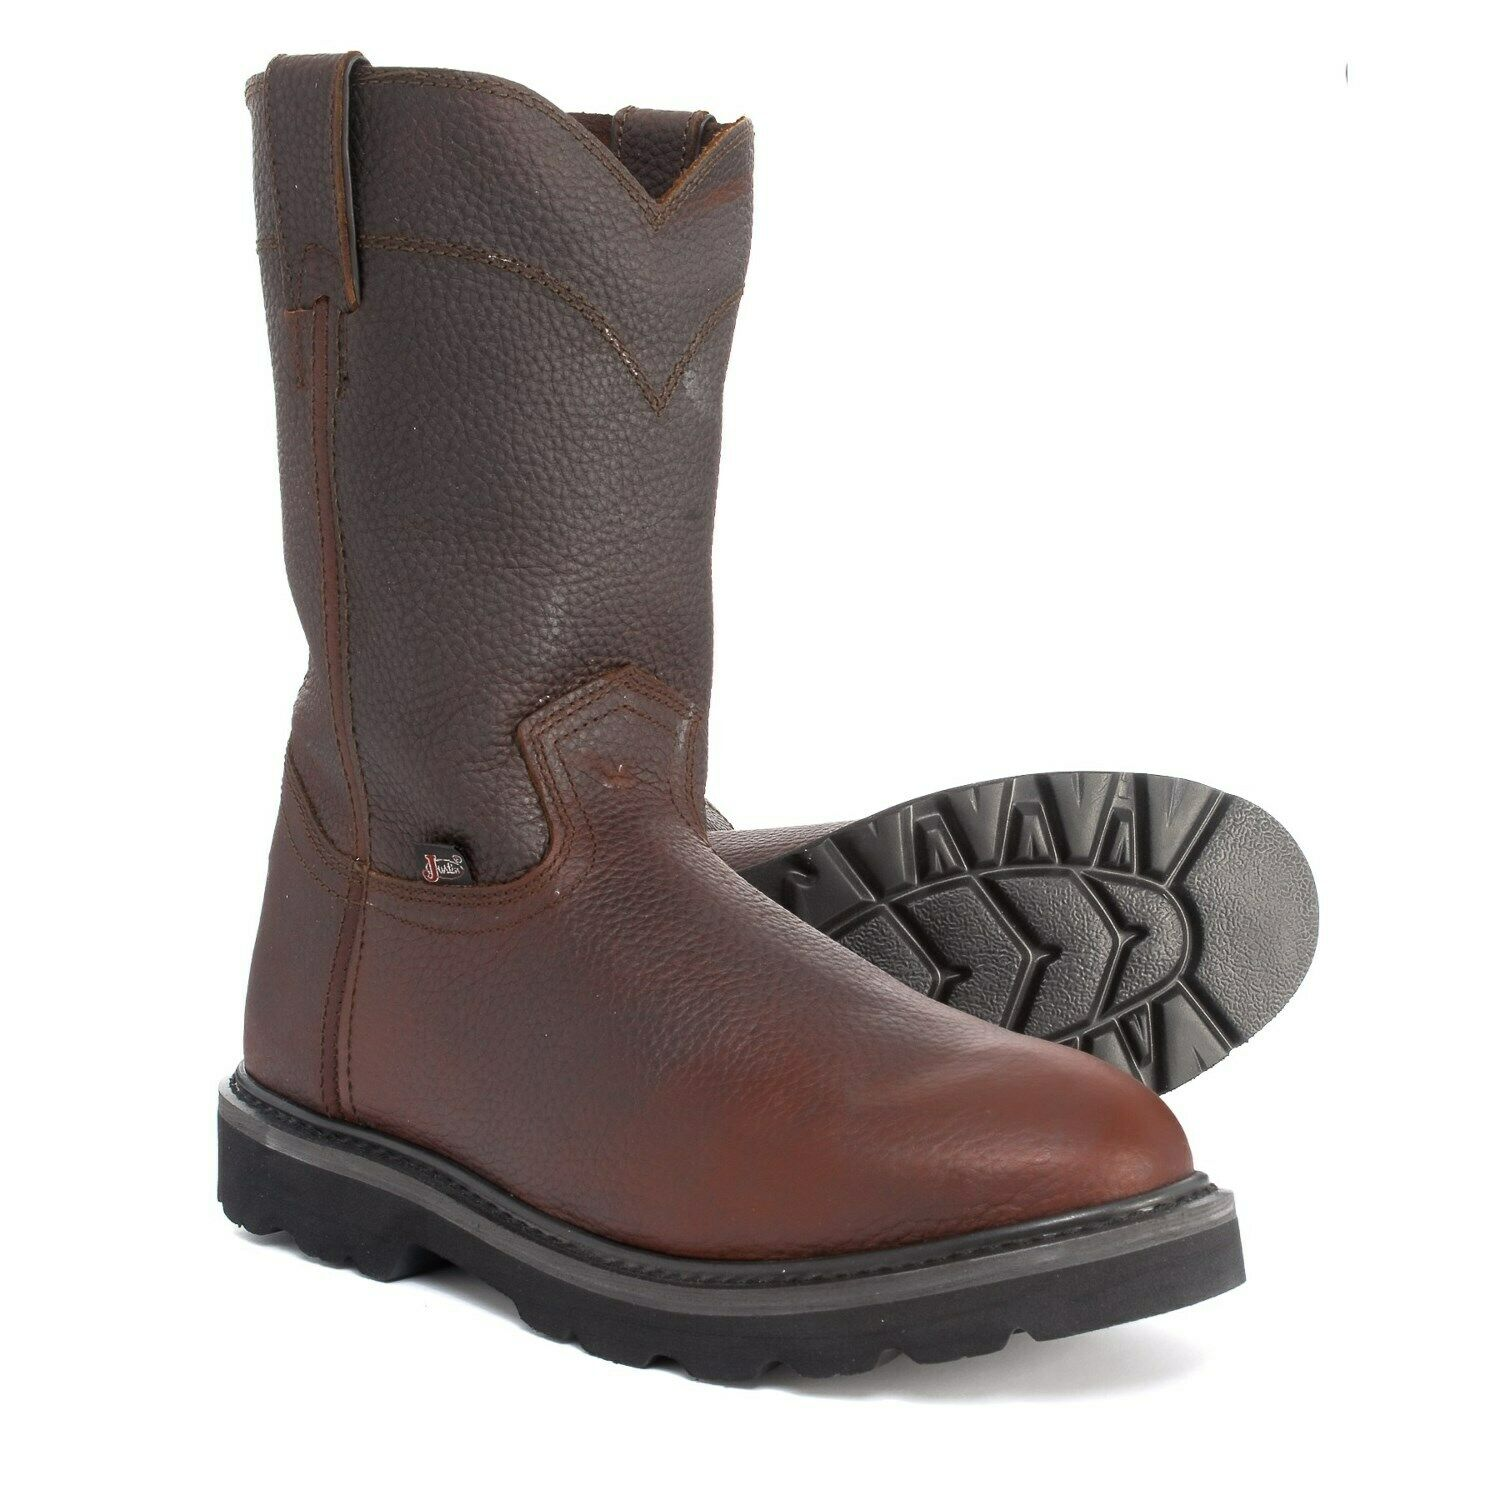 Mens Justin Screwdriver Oiled Leather Work Boots 10  Brown Black WK4905